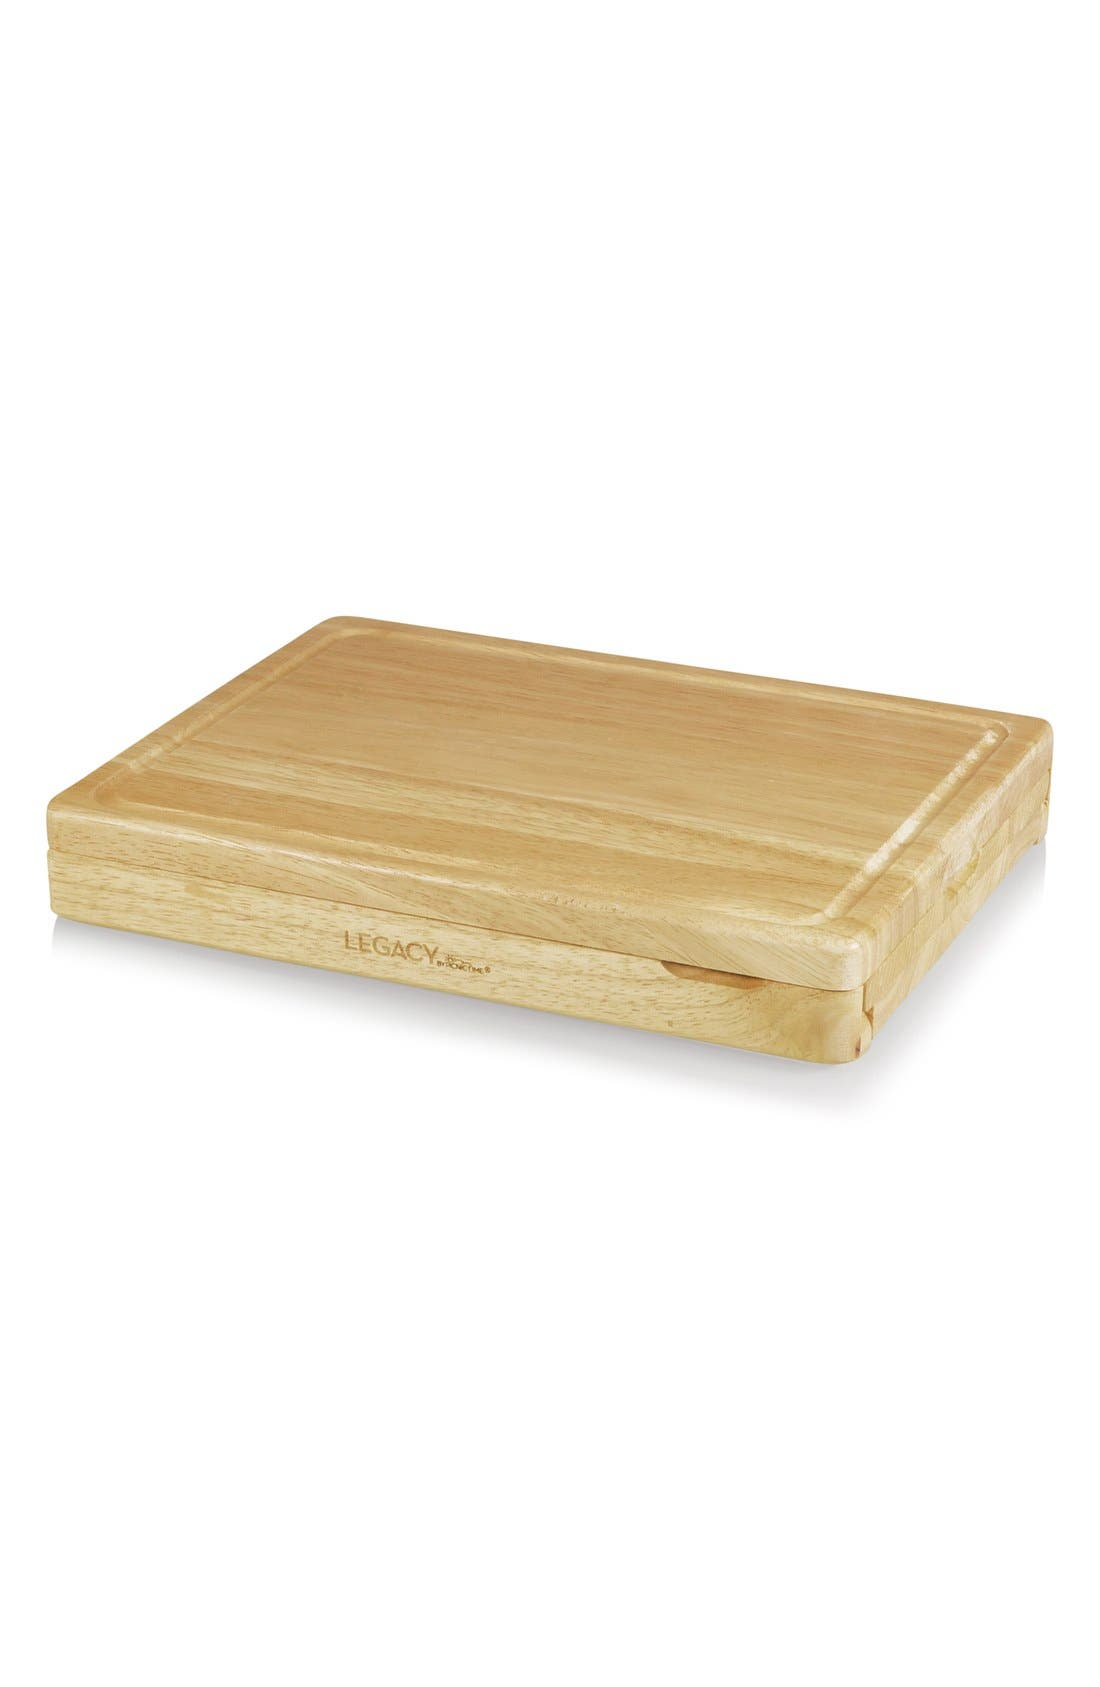 'Asiago' Cutting Board & Cheese Tools,                             Alternate thumbnail 2, color,                             200